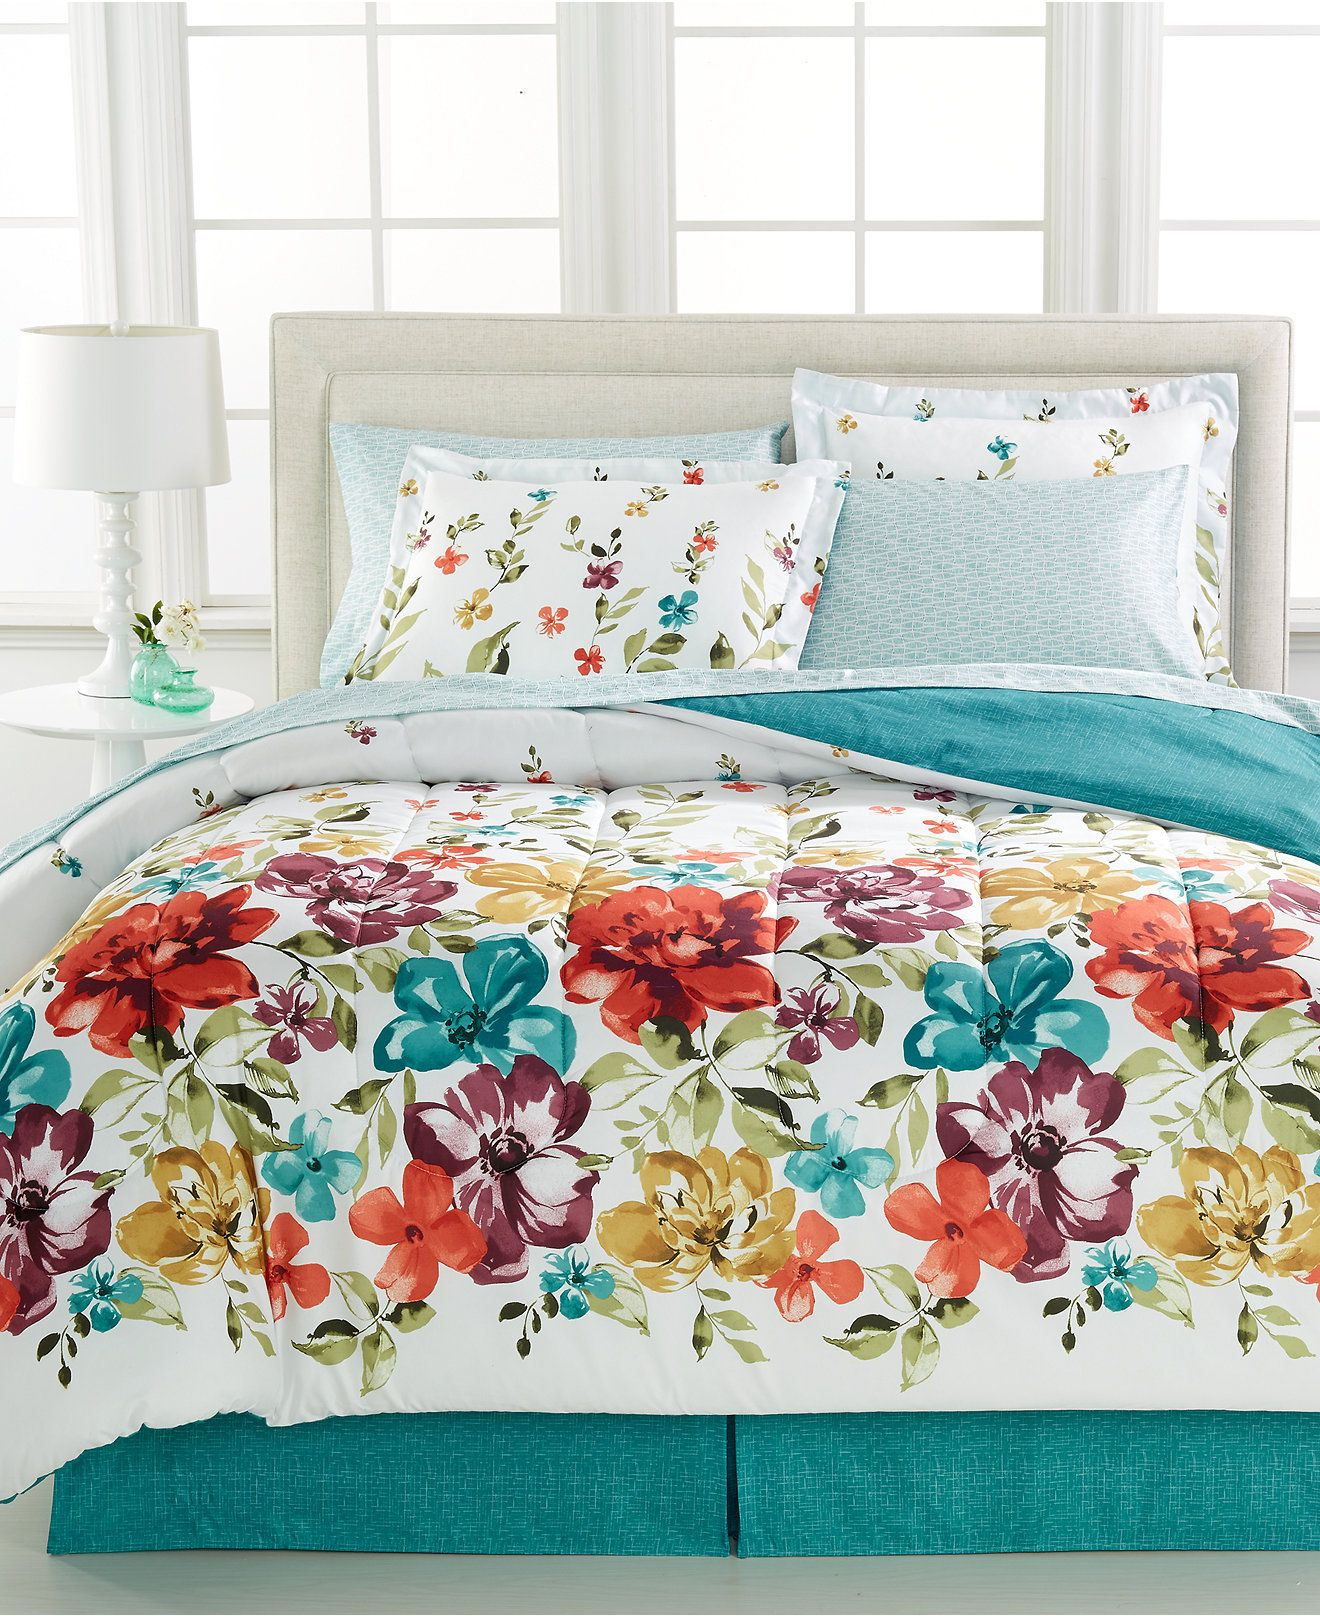 king asli pictures comforter twin macy comforters on co sale cal macys aetherair boyacachico sets fascinating bedding shocking mattress at sheets